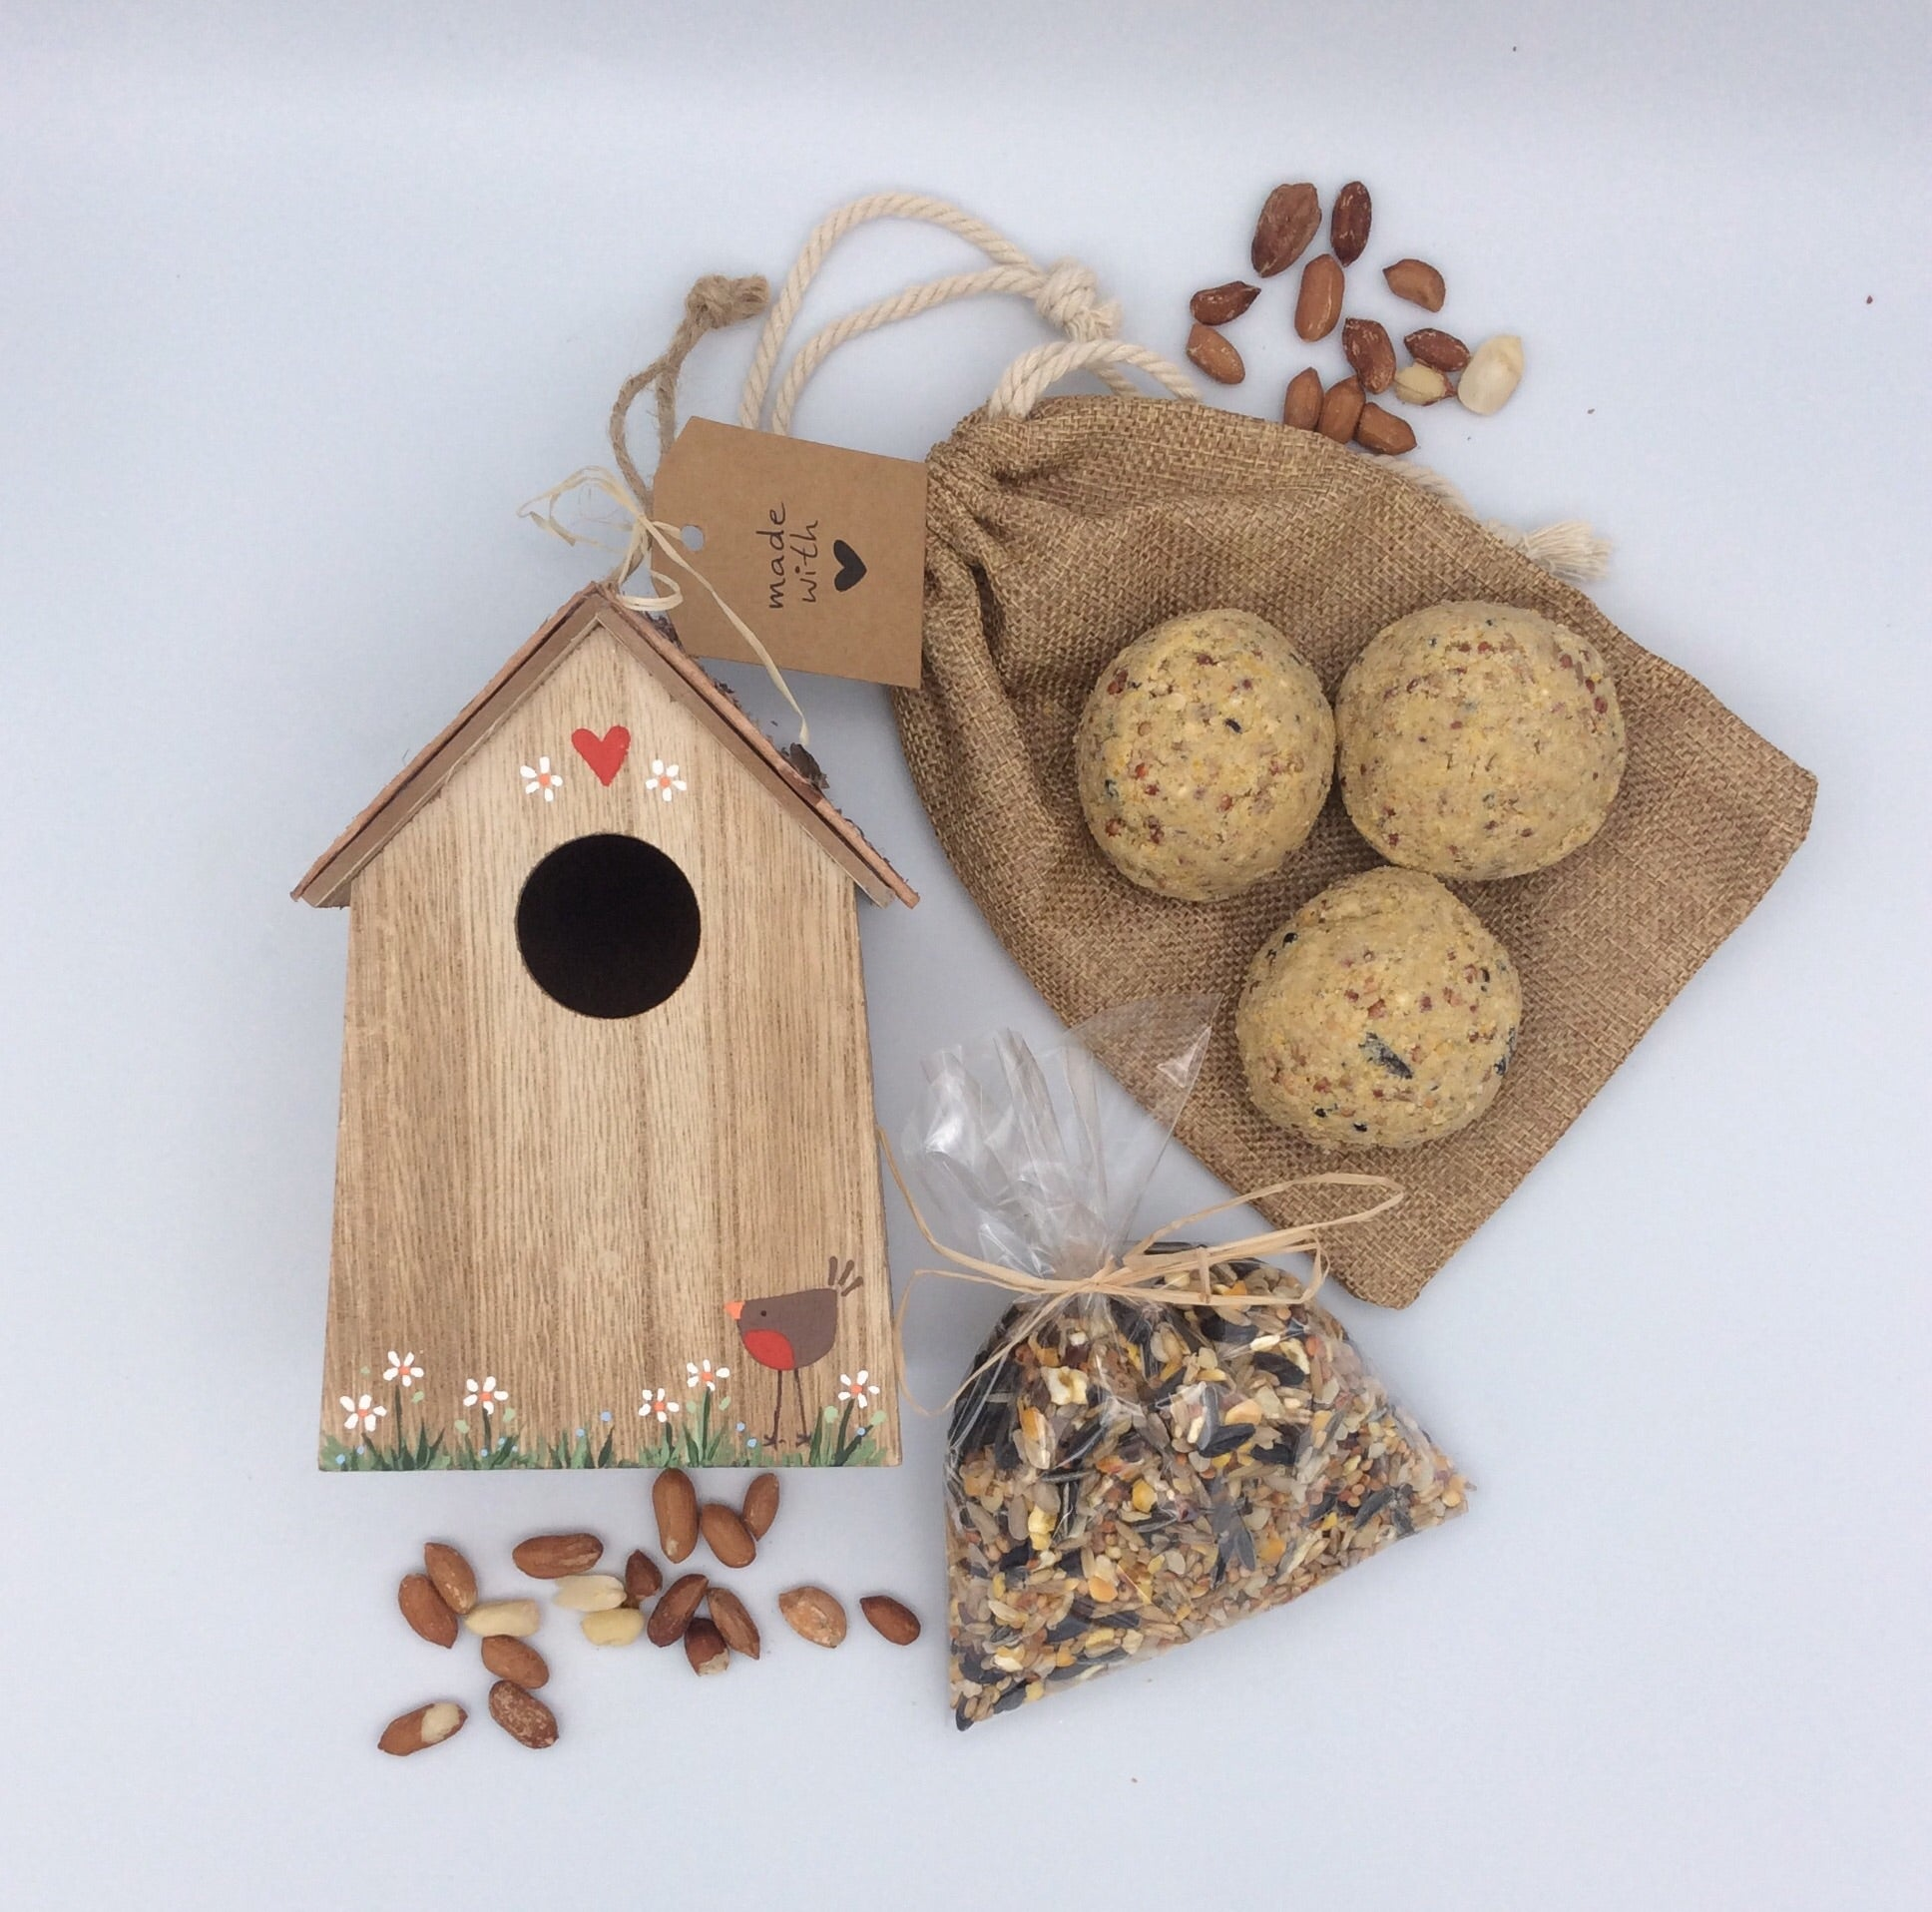 Hand painted bird box and bird seed gift set.